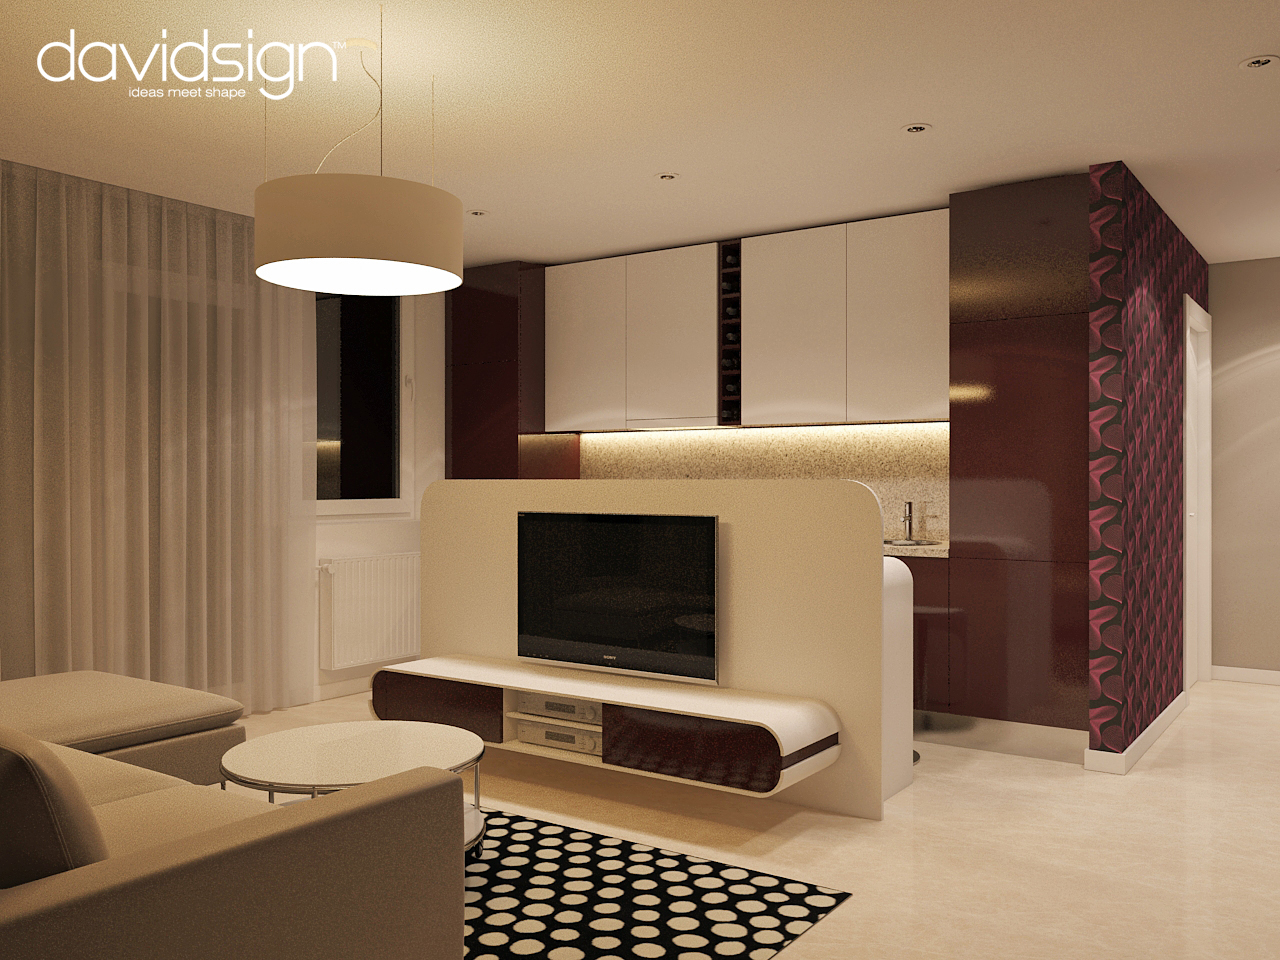 Dizain Interior Apartament Home Design Idea